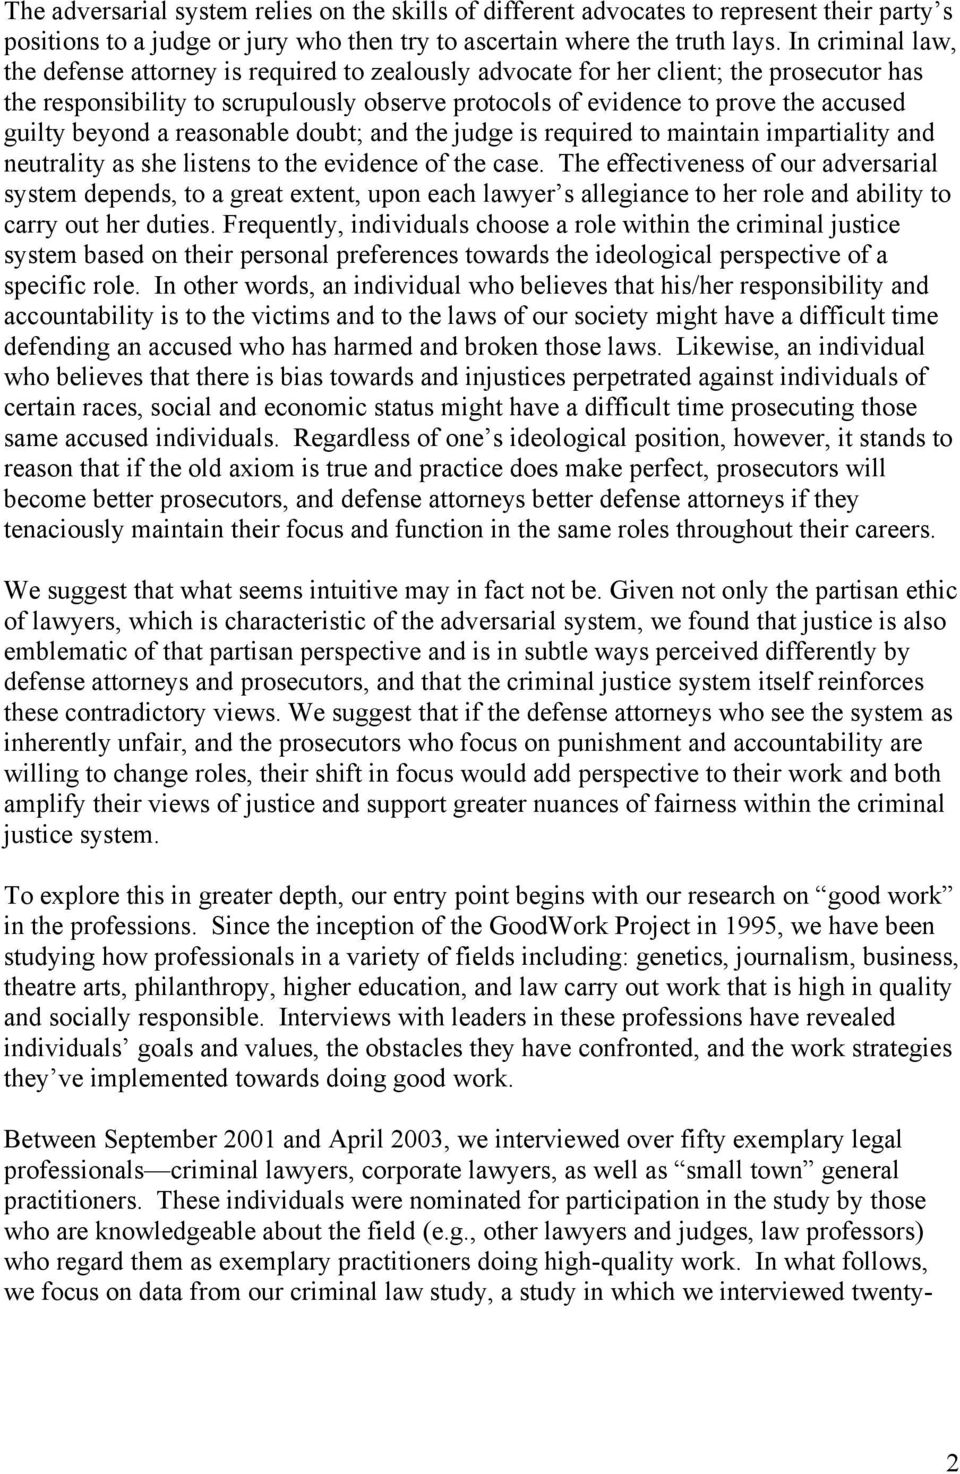 beyond a reasonable doubt; and the judge is required to maintain impartiality and neutrality as she listens to the evidence of the case.